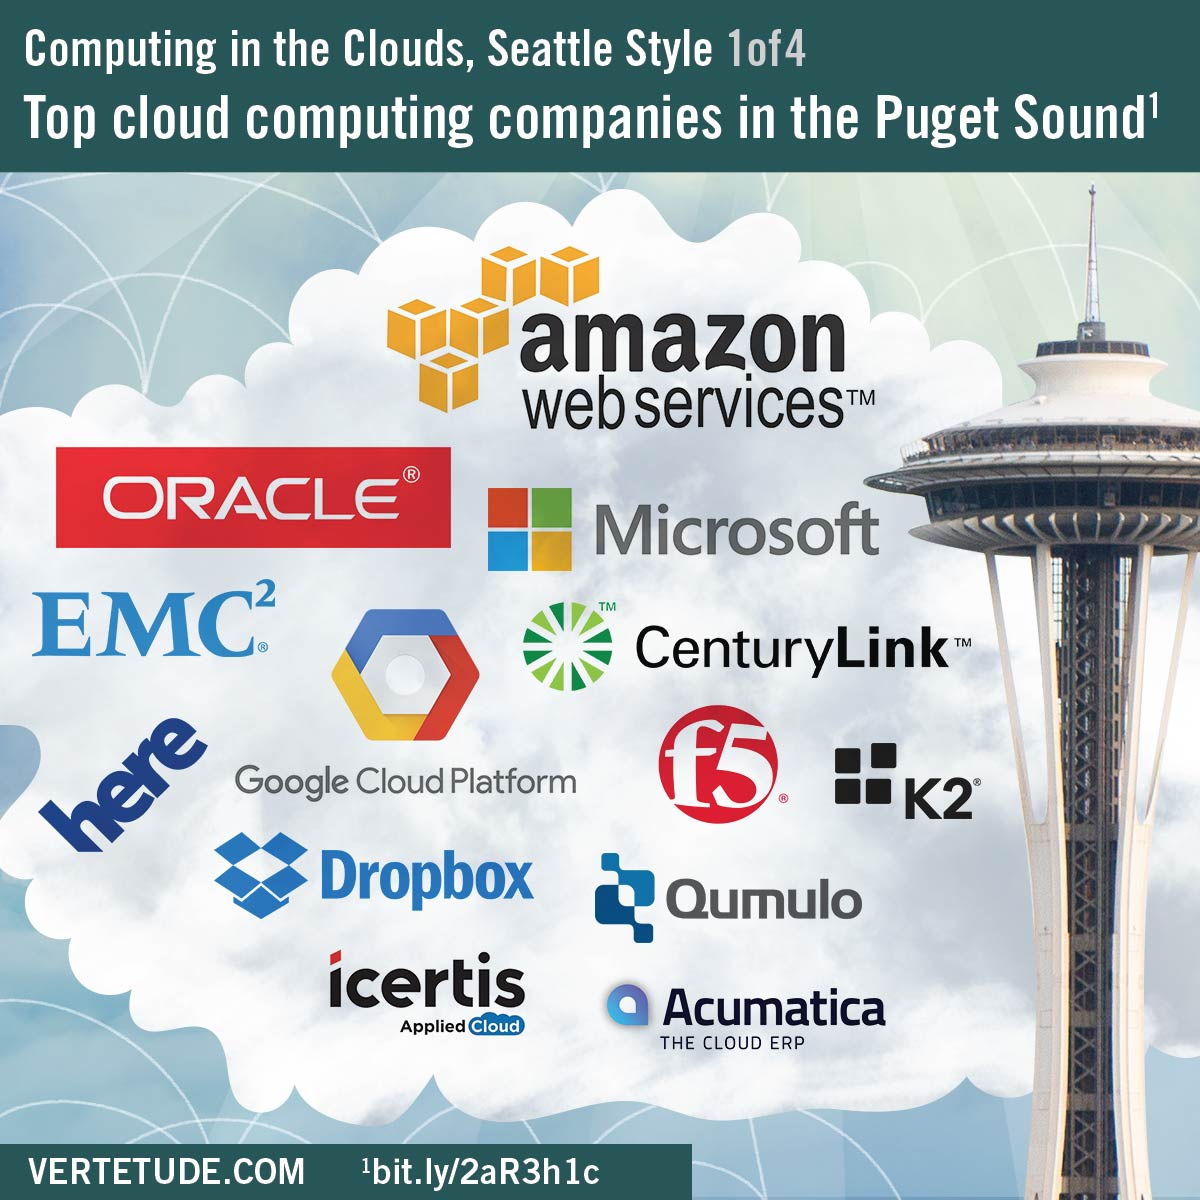 Infographic, data cloud computing in Seattle, top companies in the Puget Sound